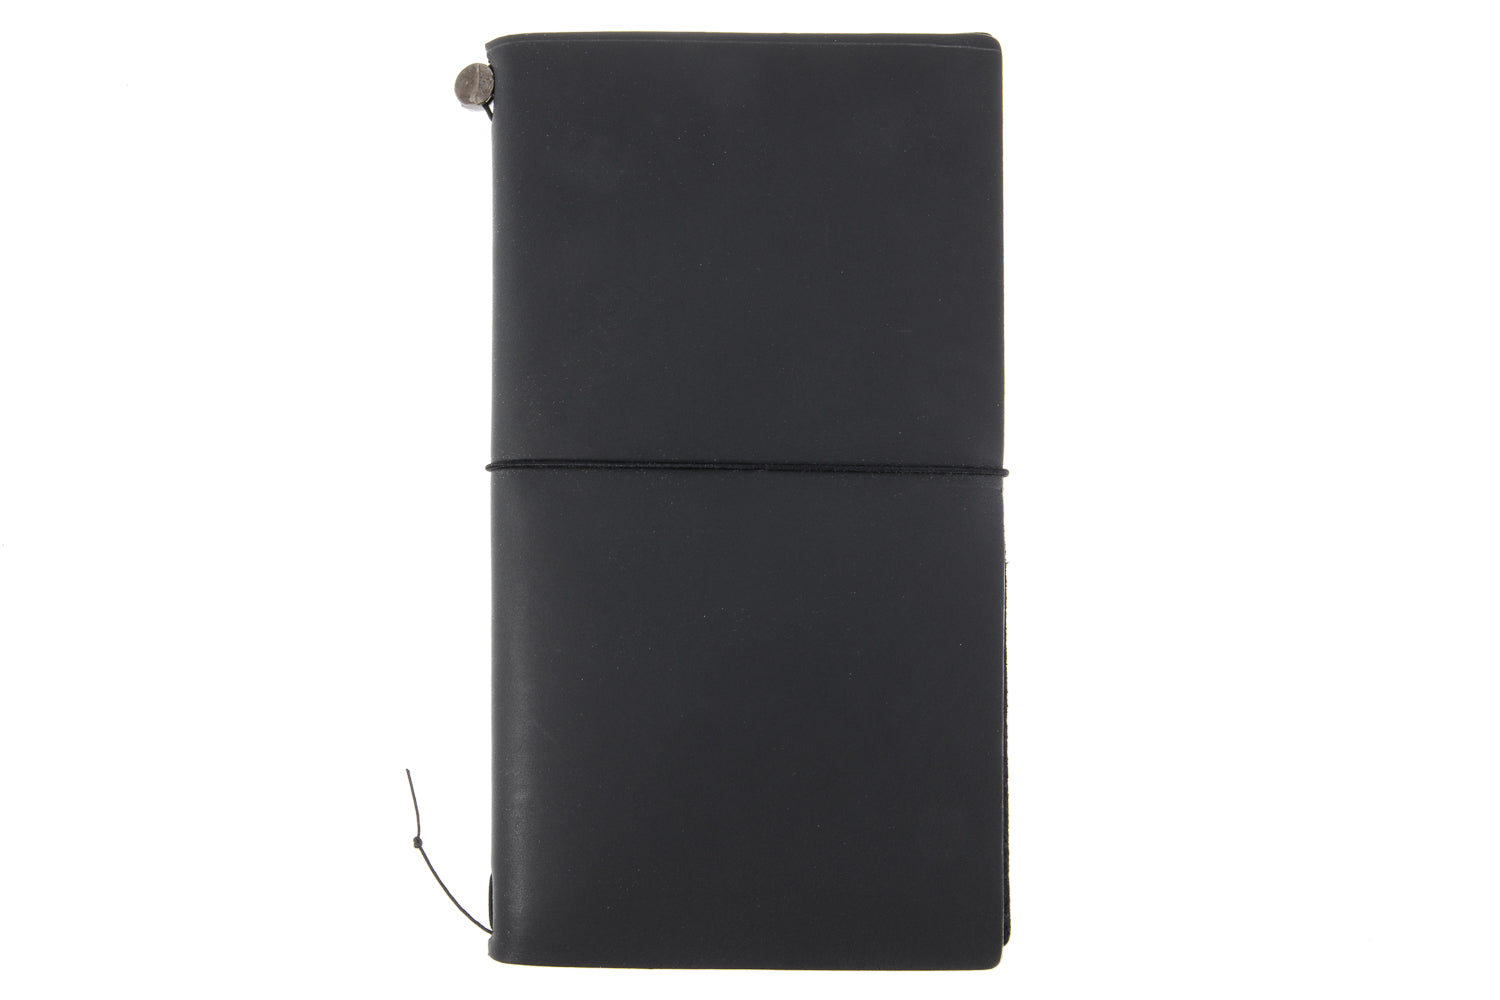 Traveler's Notebook - Black (Regular)